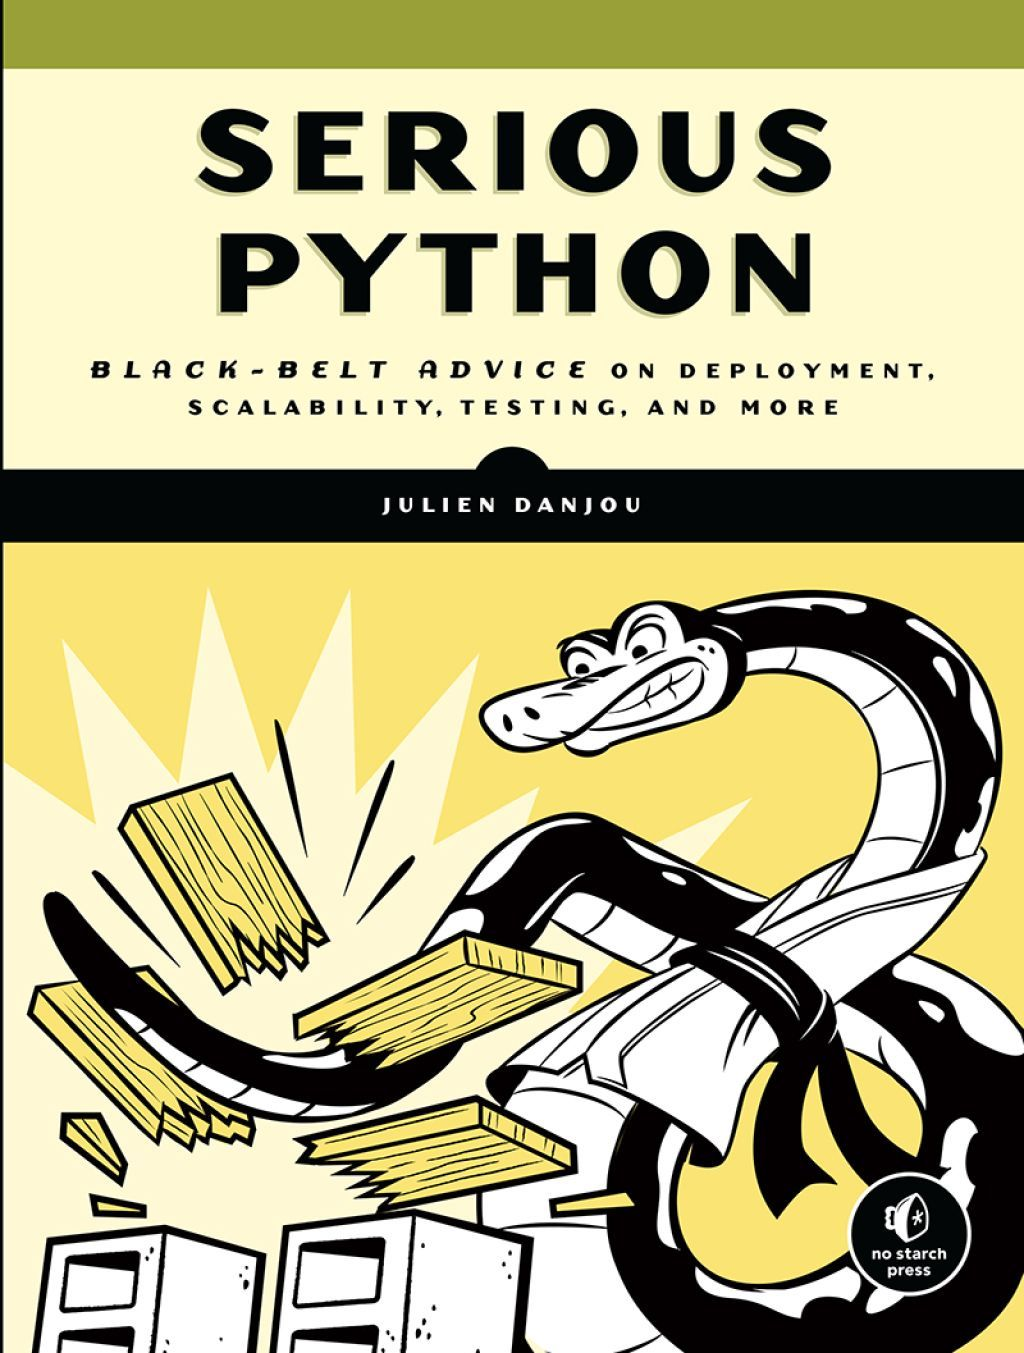 Serious Python: Black-Belt Advice on Deployment, Scalability, Testing, and More (2018, No Starch Press)